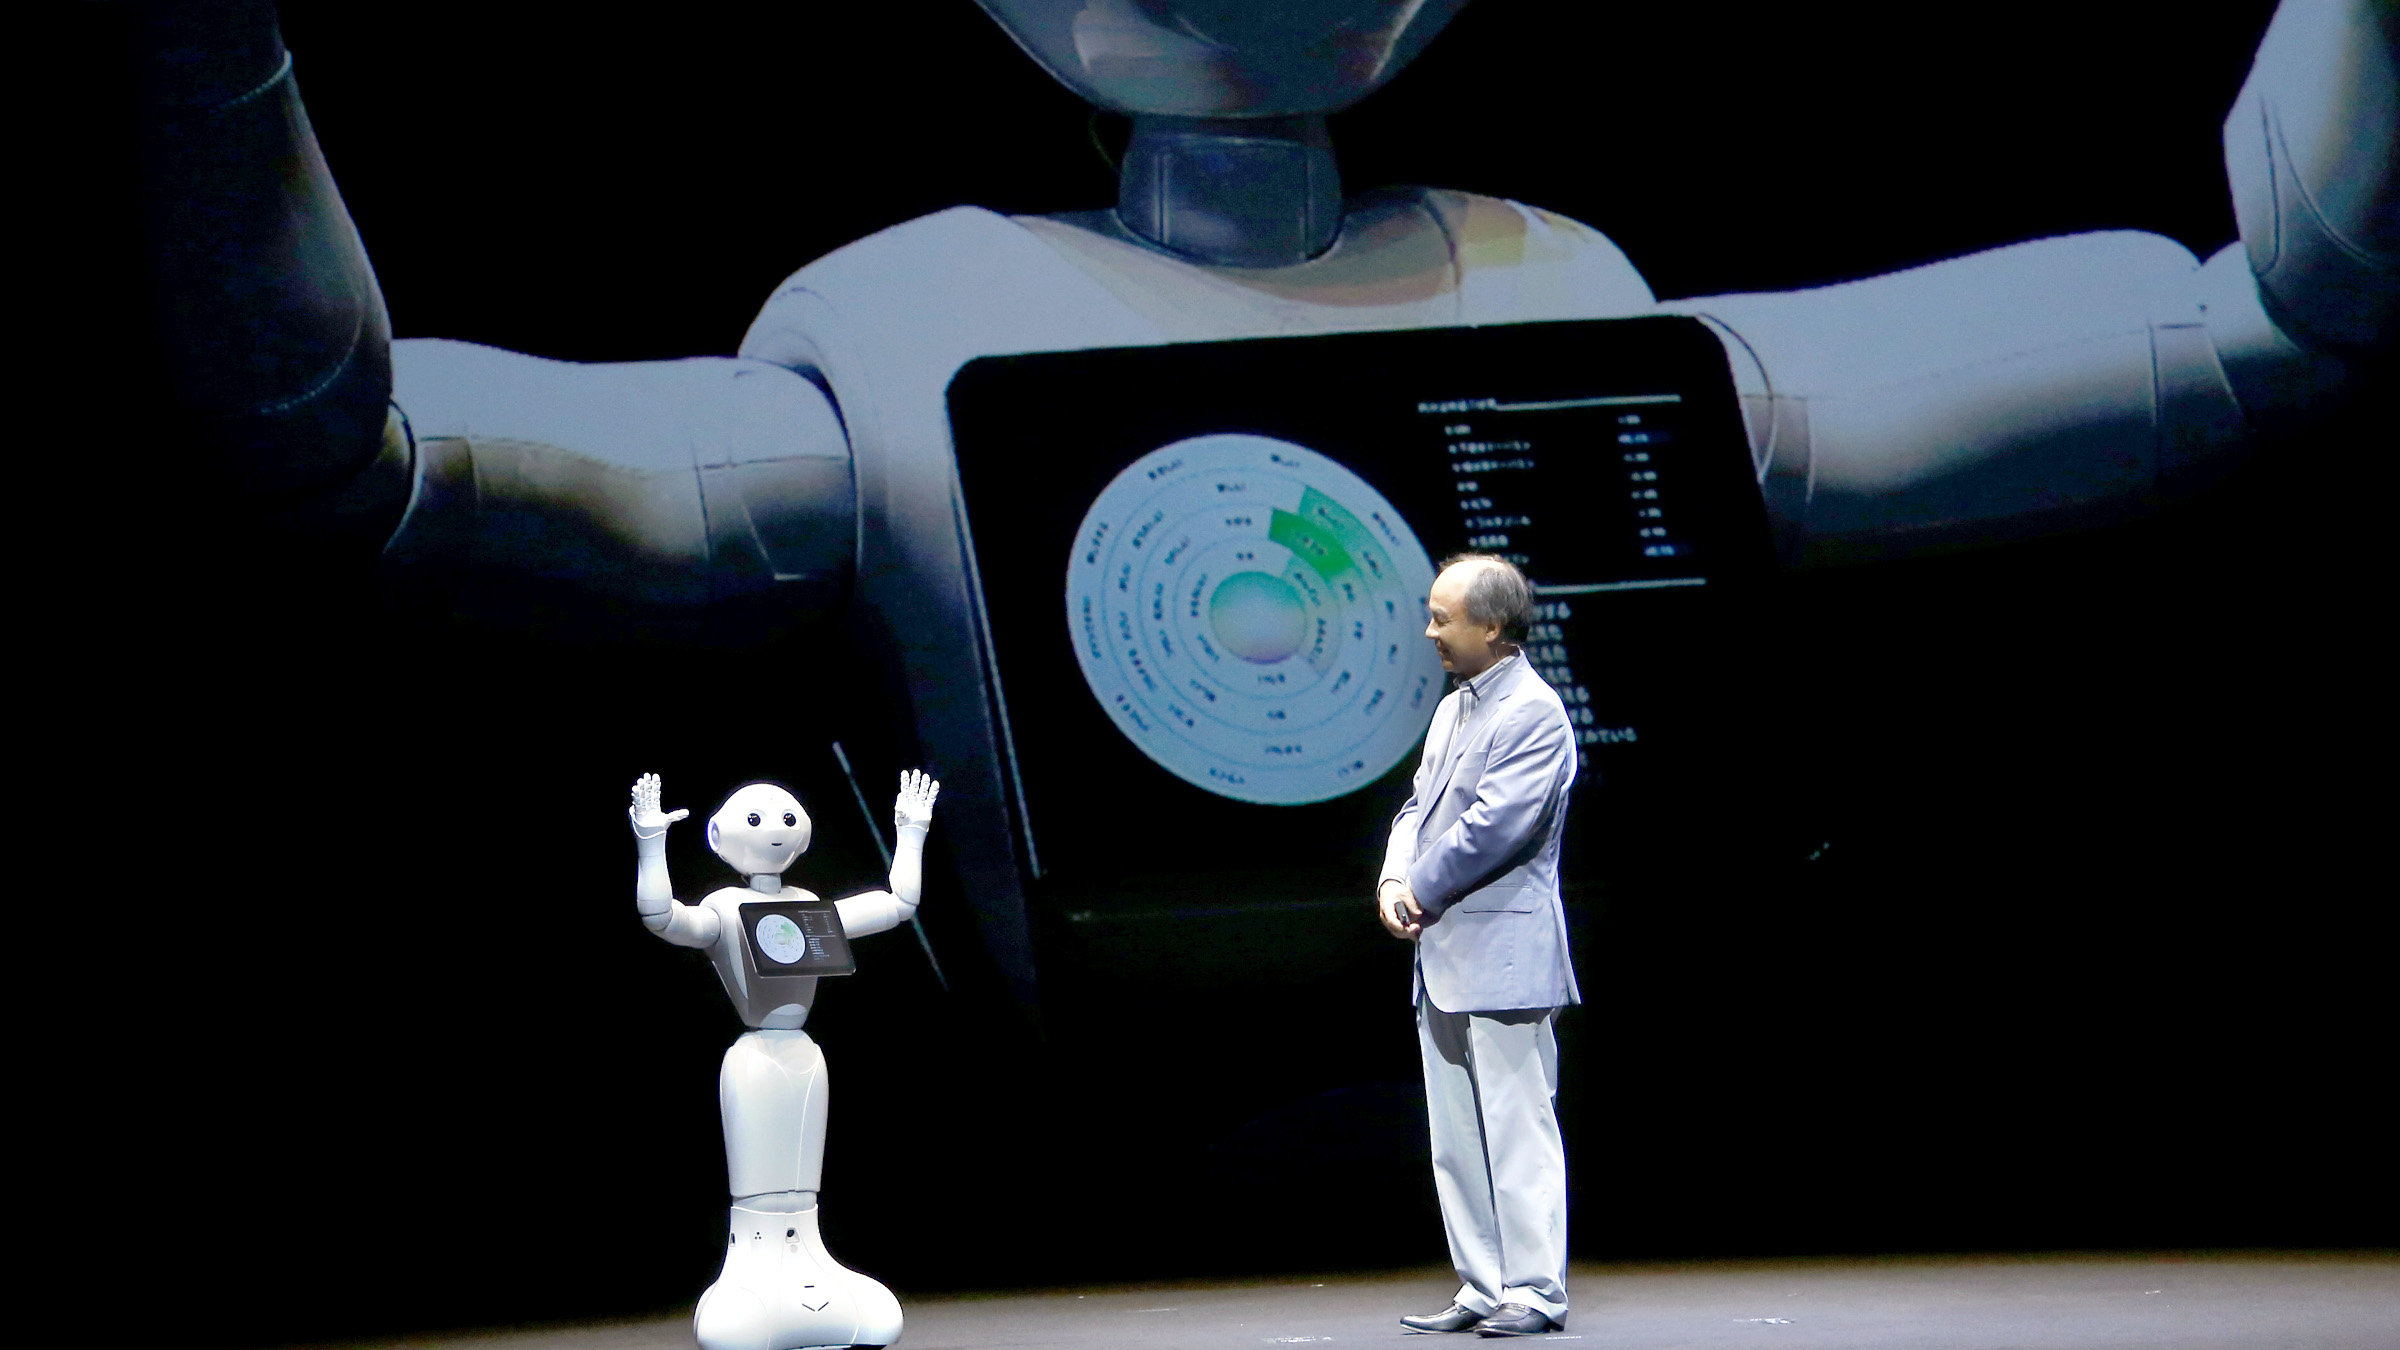 SoftBank Corp CEO Masayoshi Son speaks with the company's robot Pepper during a press conference in Maihama, near Tokyo, Thursday, June 18, 2015.